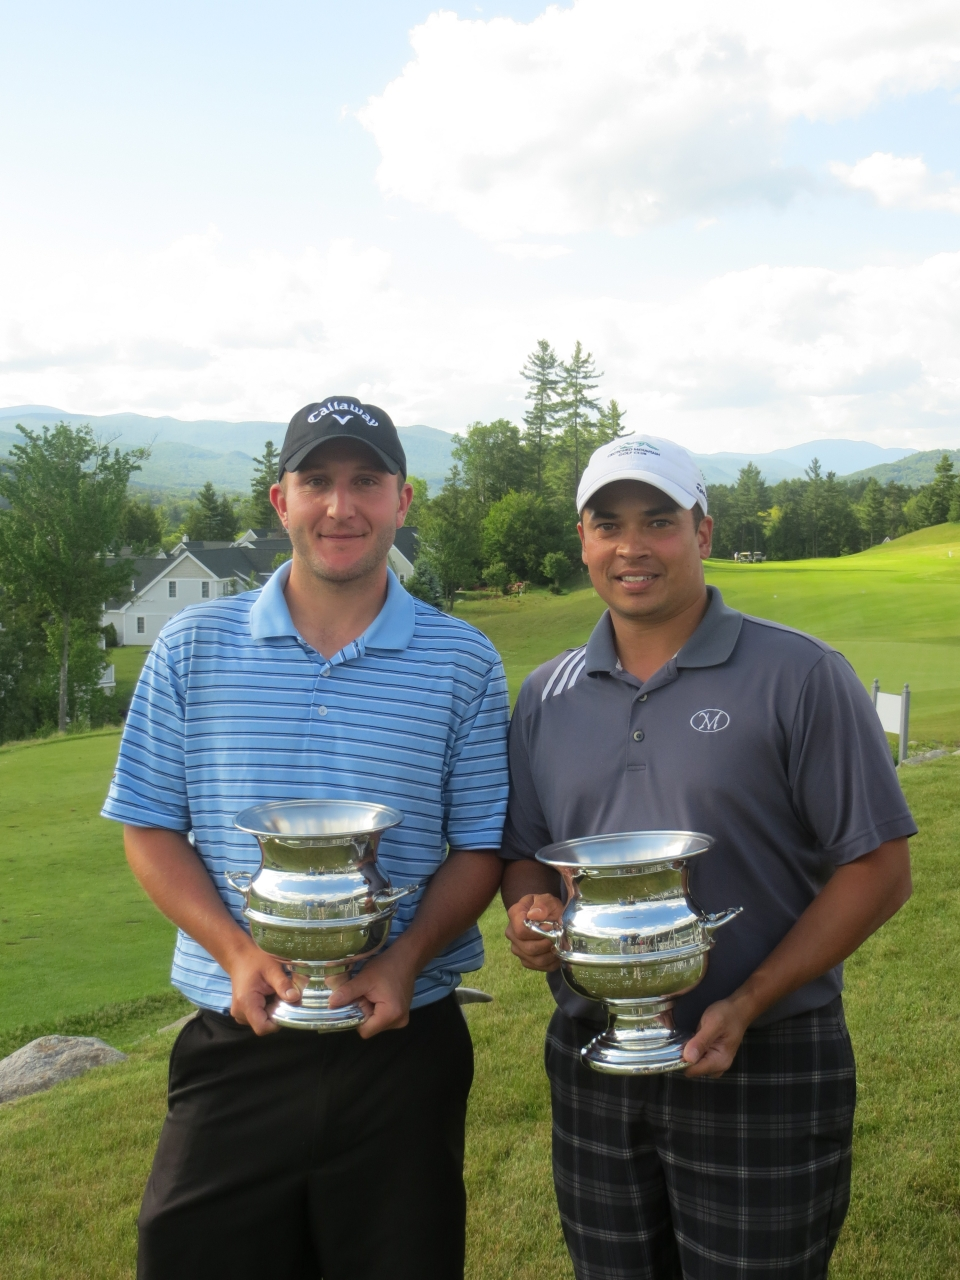 Kohler and Chamberlain seen here after winning the 2013 NHGA Four Ball